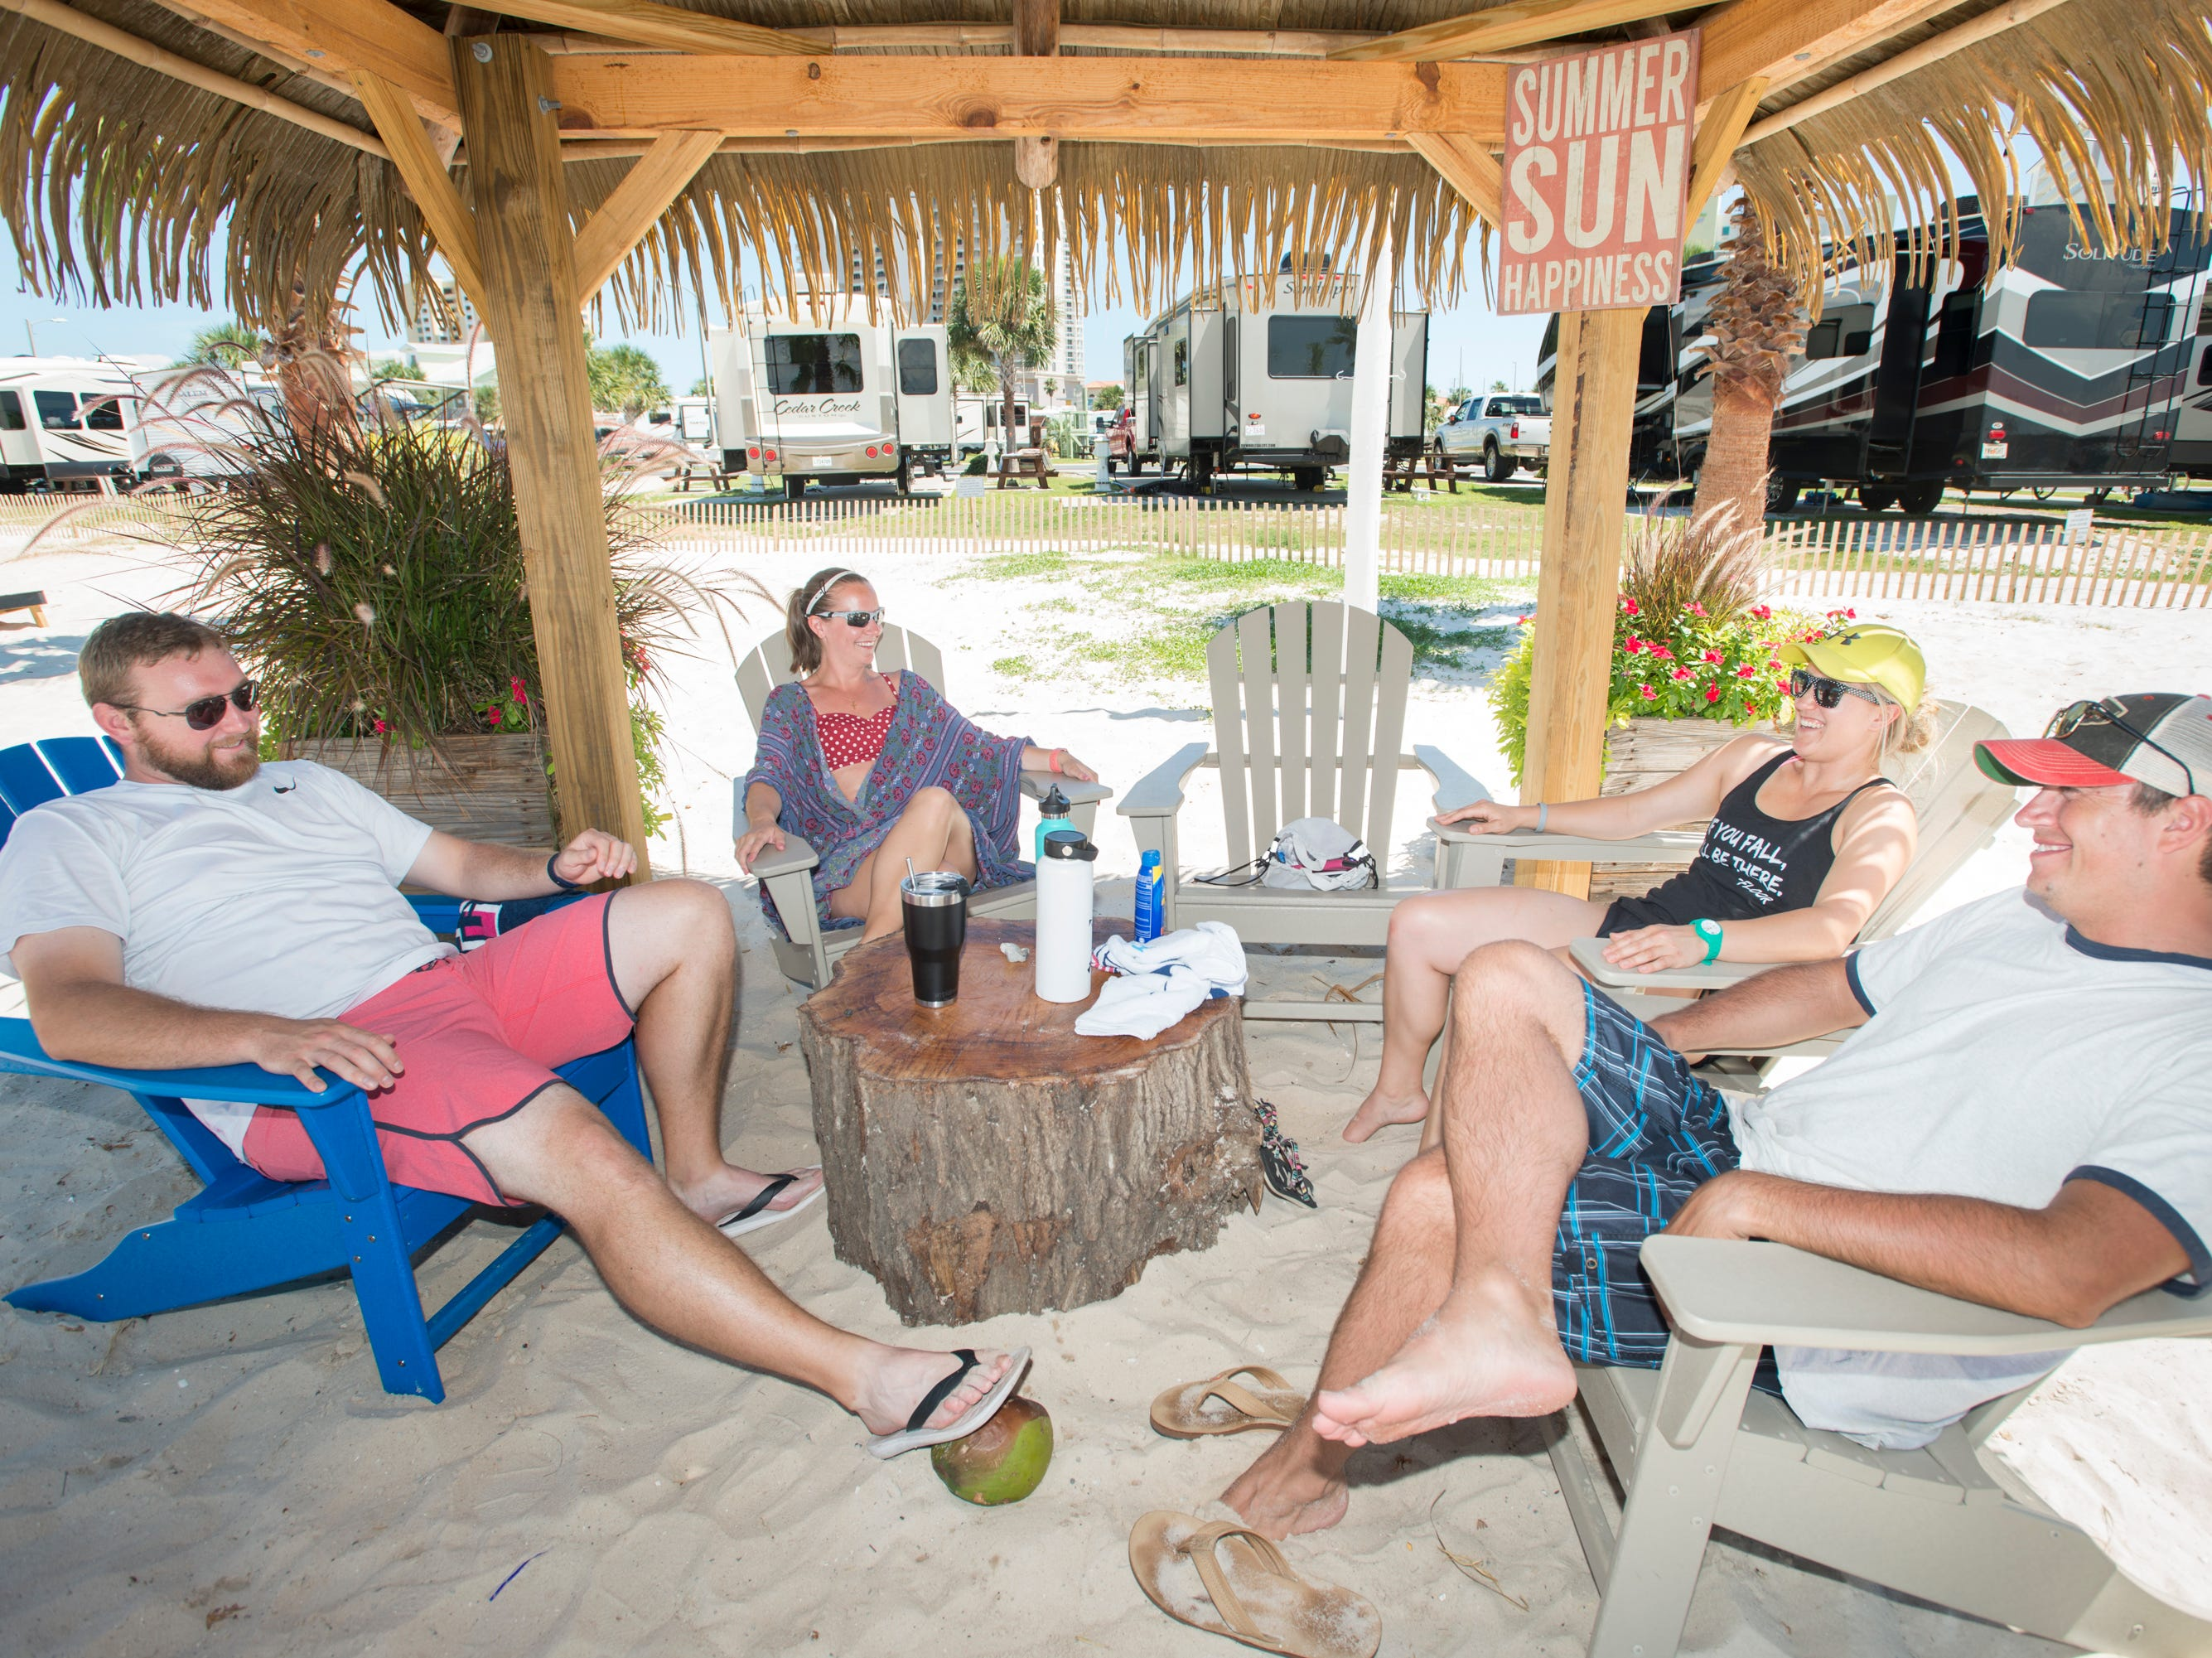 Pensacola Beach RV Resort residents Tyler and Katie Moos, left,  relax with their guests Tommy  Thrall, right, and Jordan Sjostrand, near the resort's Tiki Bar in Pensacola on Tuesday, August 7, 2018.